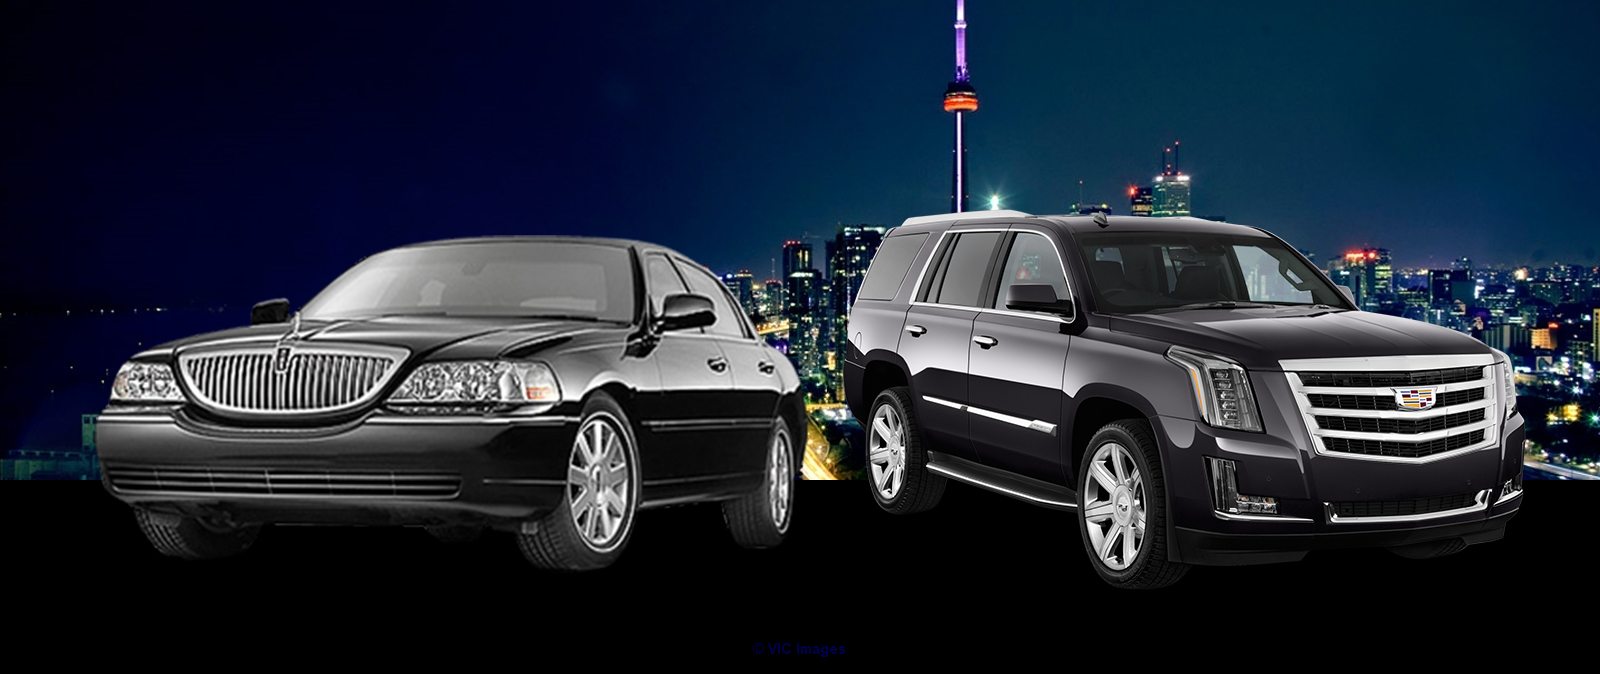 Airport Limousine Taxi in Waterloo